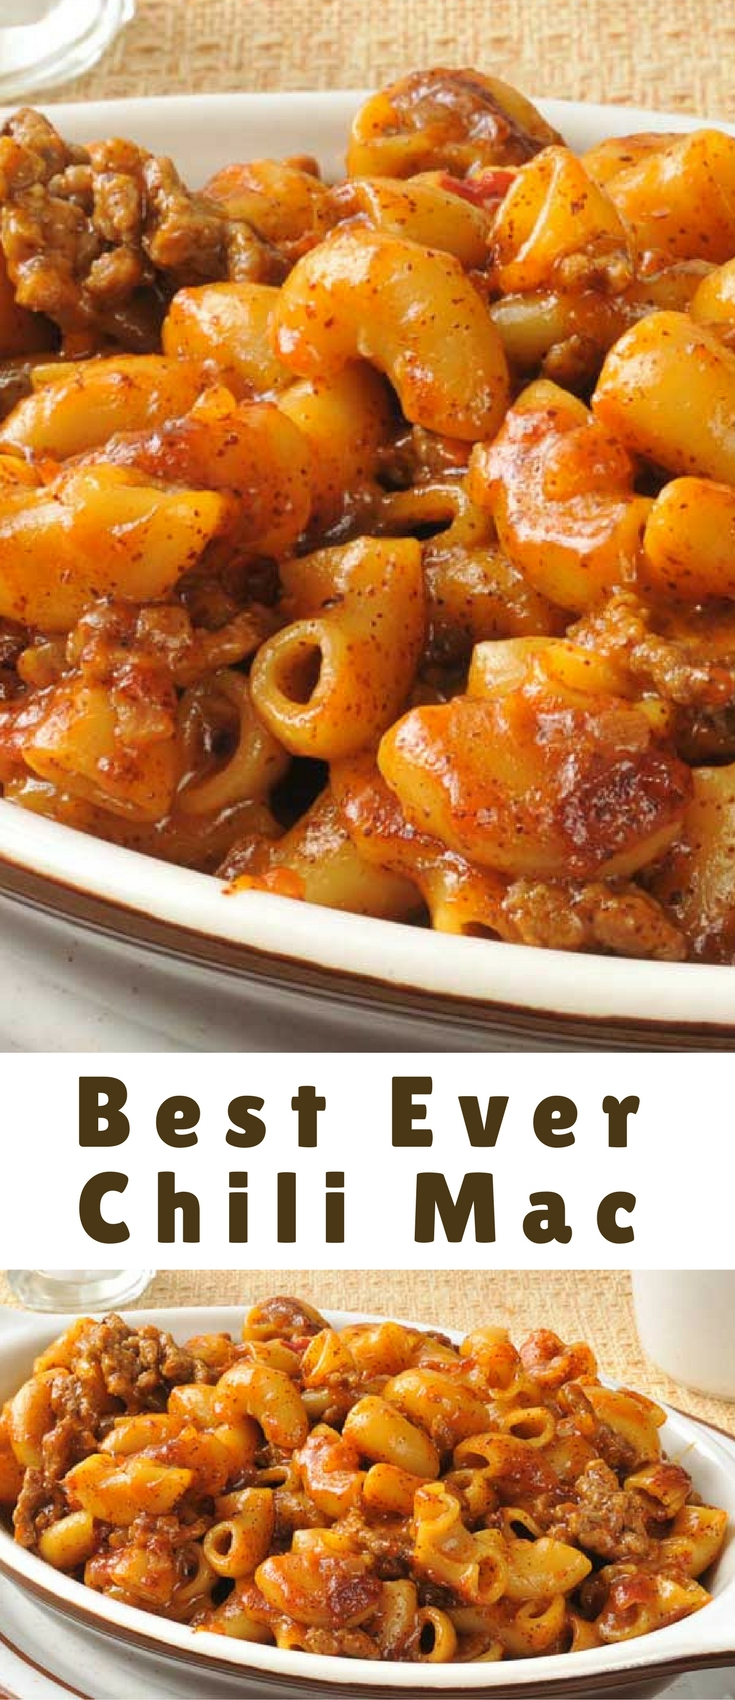 This is it. The best chili mac worldwide. Right here.